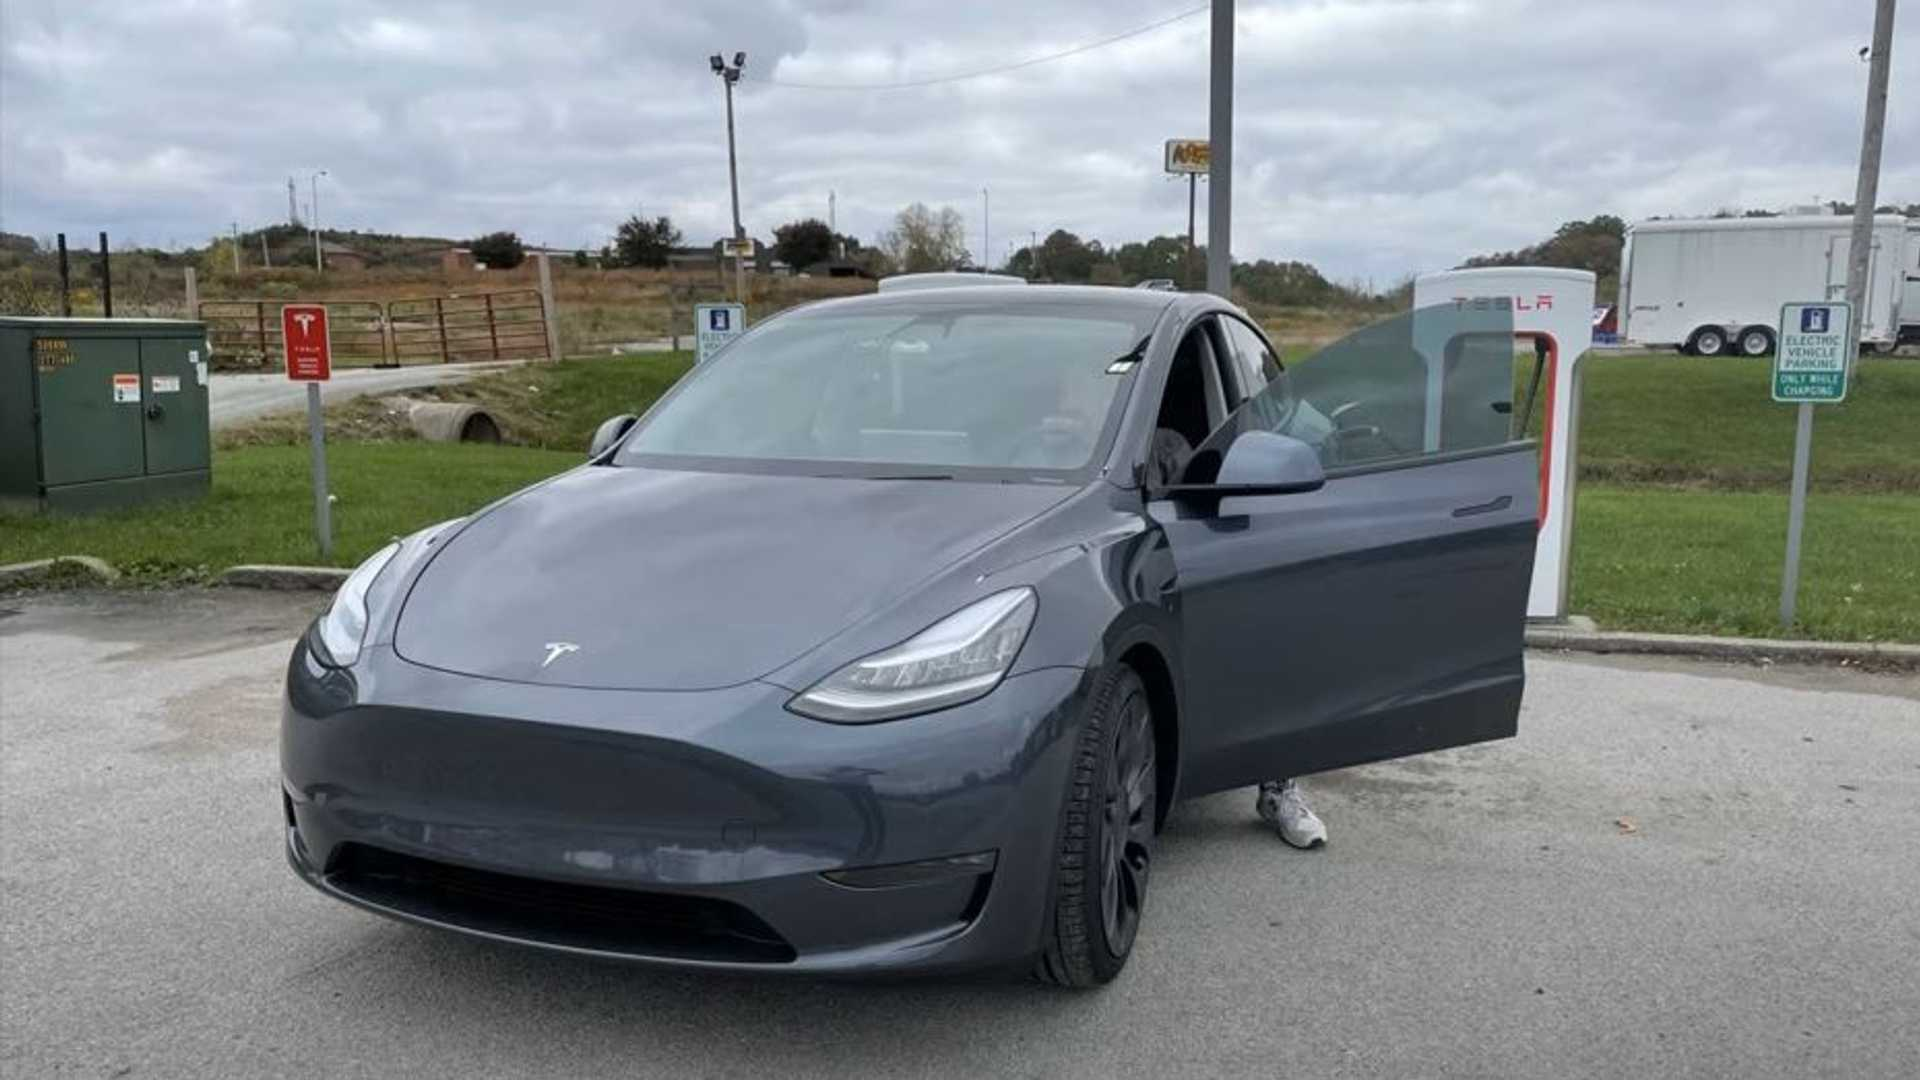 Driving A Tesla Model Y 1,200 Miles In Just One Day: Detroit To Tampa